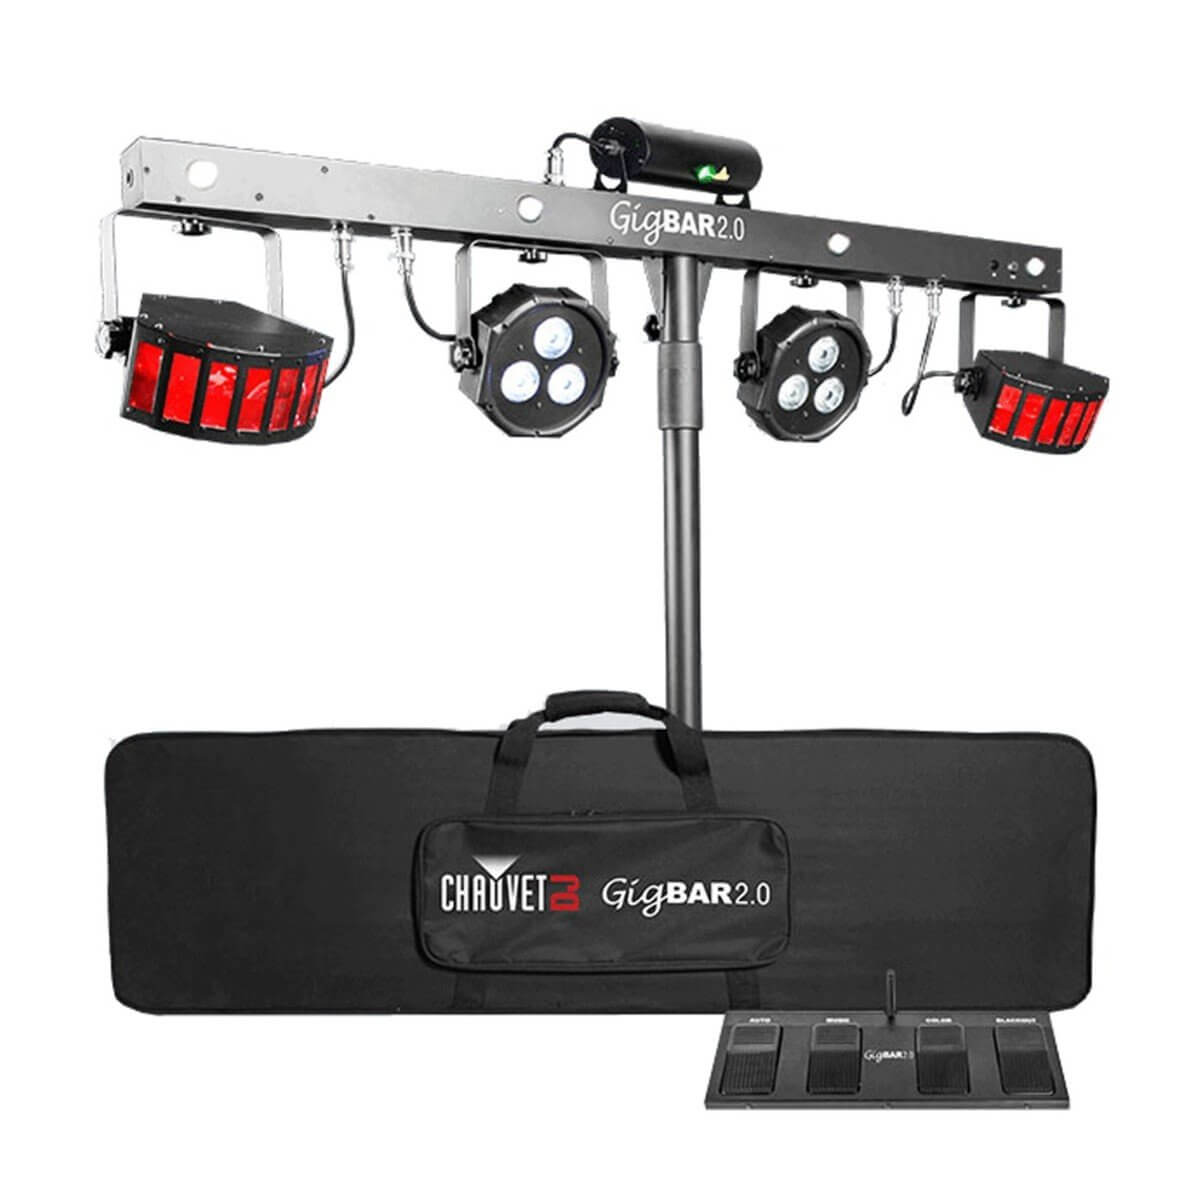 Chauvet GigBAR 2 IRC 4 in 1 DJ Lighting System